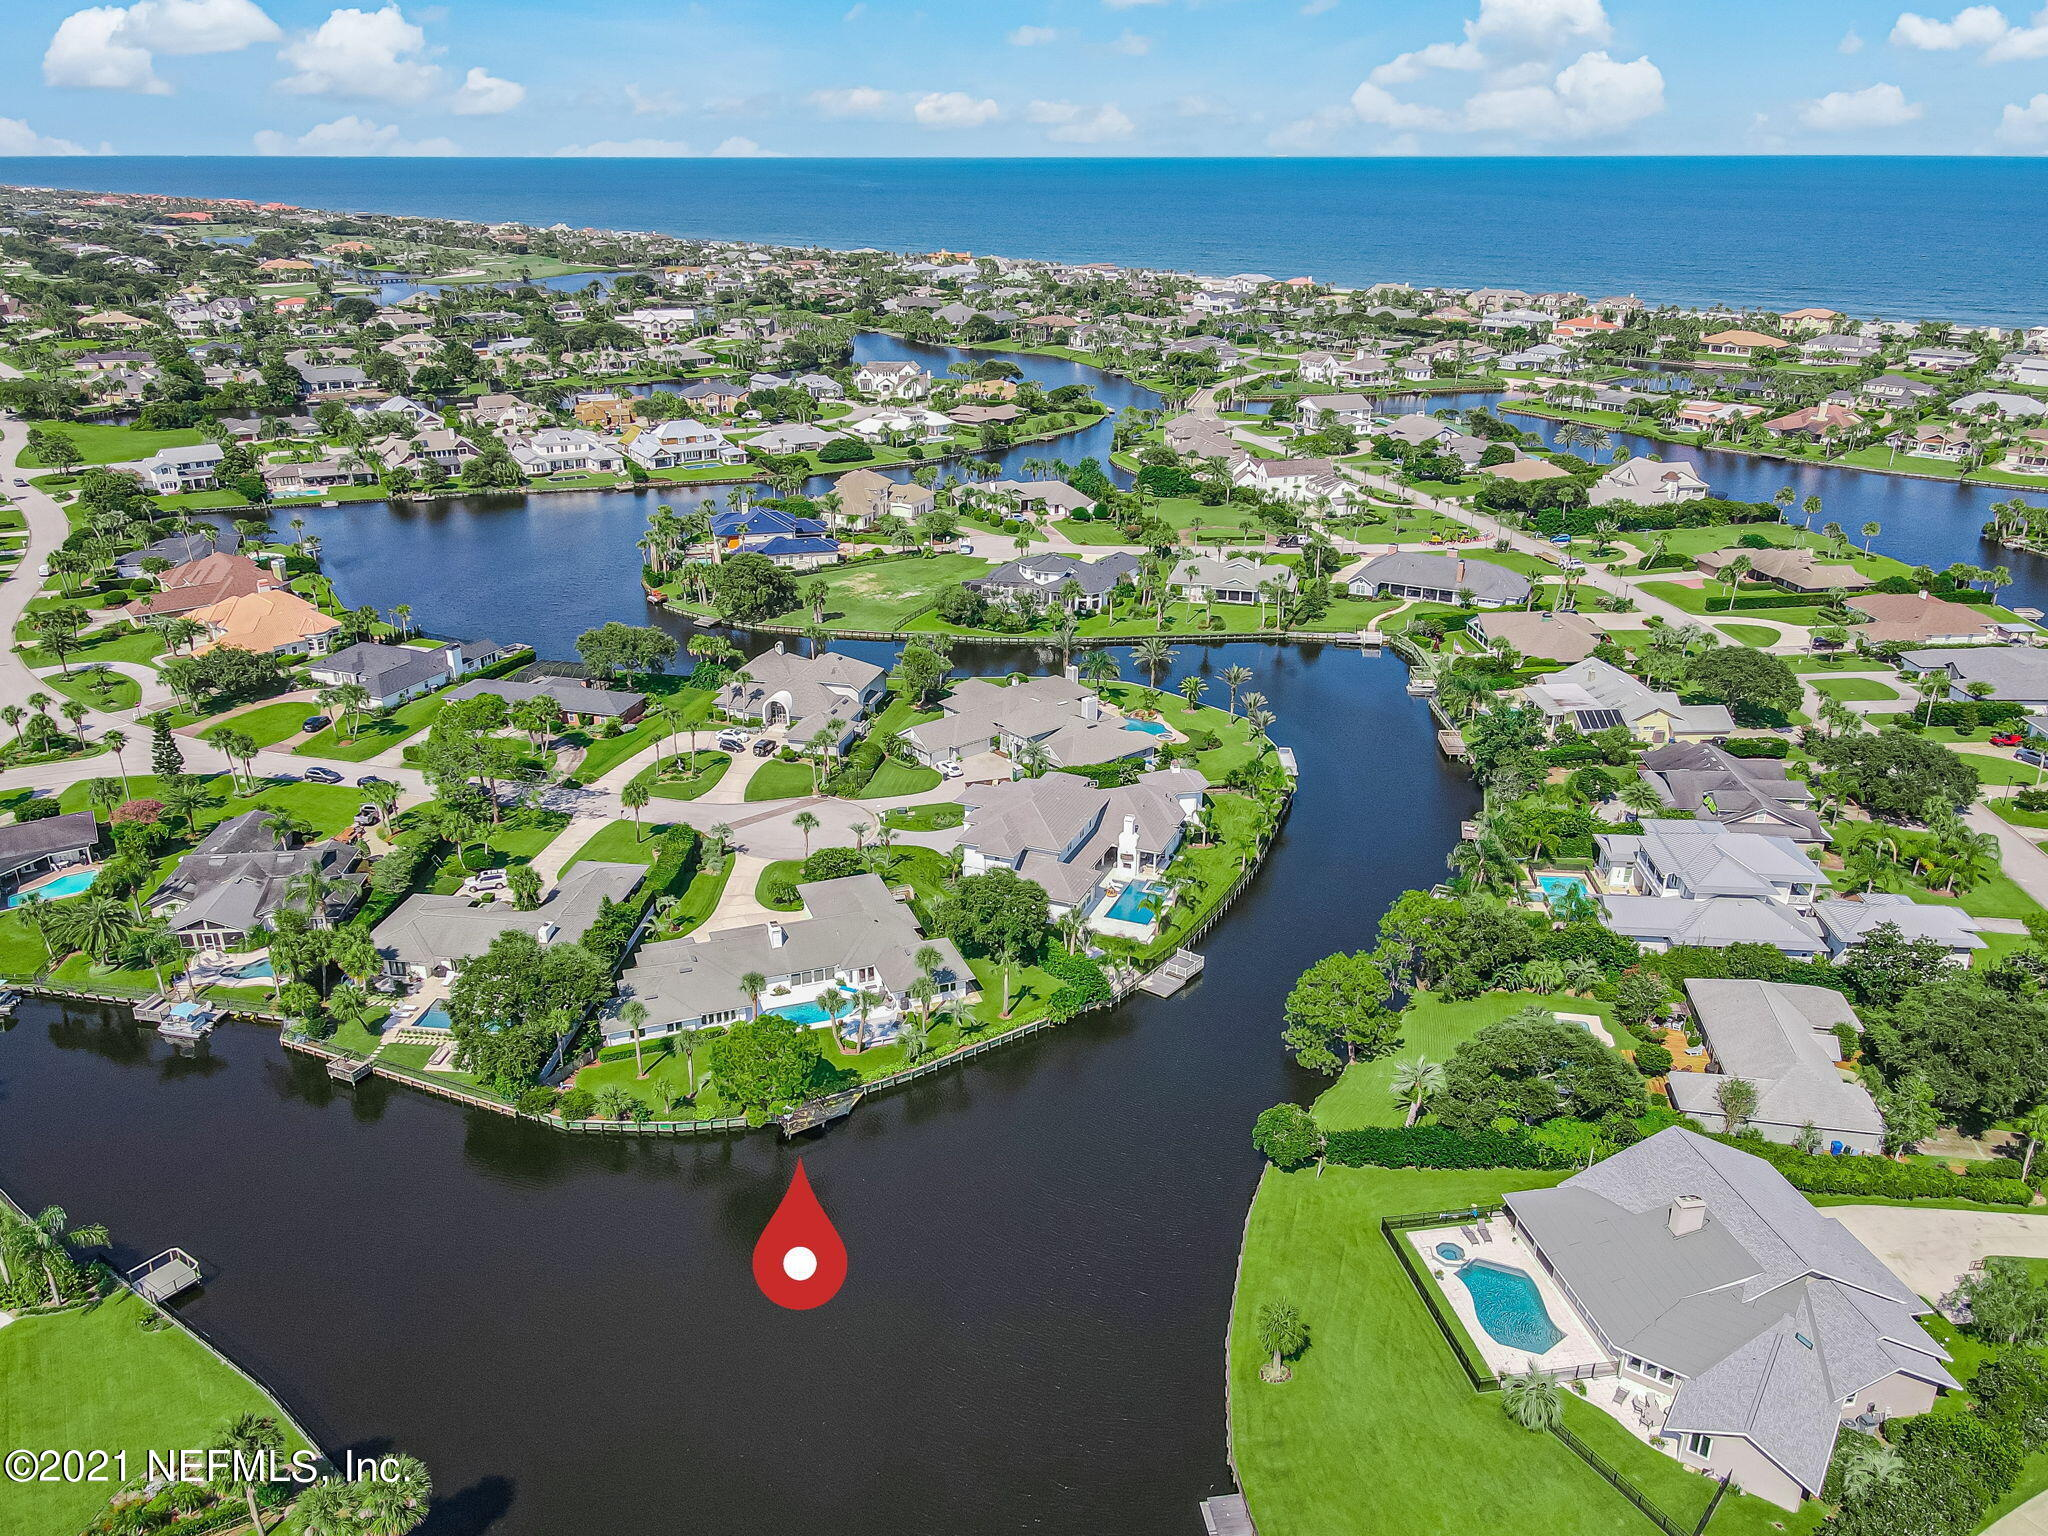 Spectacular waterfront renovated pool home in Old Ponte Vedra Beach! It's hard to take your eyes off the magnificent view. This property anchors the large part of the lake, where it splits 3 ways, so your panoramic water views are 180 degrees. This one-story home is move-in ready, with updated bathrooms, kitchen, flooring, and many windows and doors (rear of the house is all Andersen). These owners designed a fantastic private office with built-ins. In addition to the 5 bedrooms, this home provides formal living & dining rooms, 2 family rooms, huge laundry/storage room. 200' bulkheaded waterfrontage gives the feeling of being on an island. The pool is great for laps and fun, and it's surrounded with 450sf of deck. Roof, HVAC, water treatment & heater 10 years old or less.